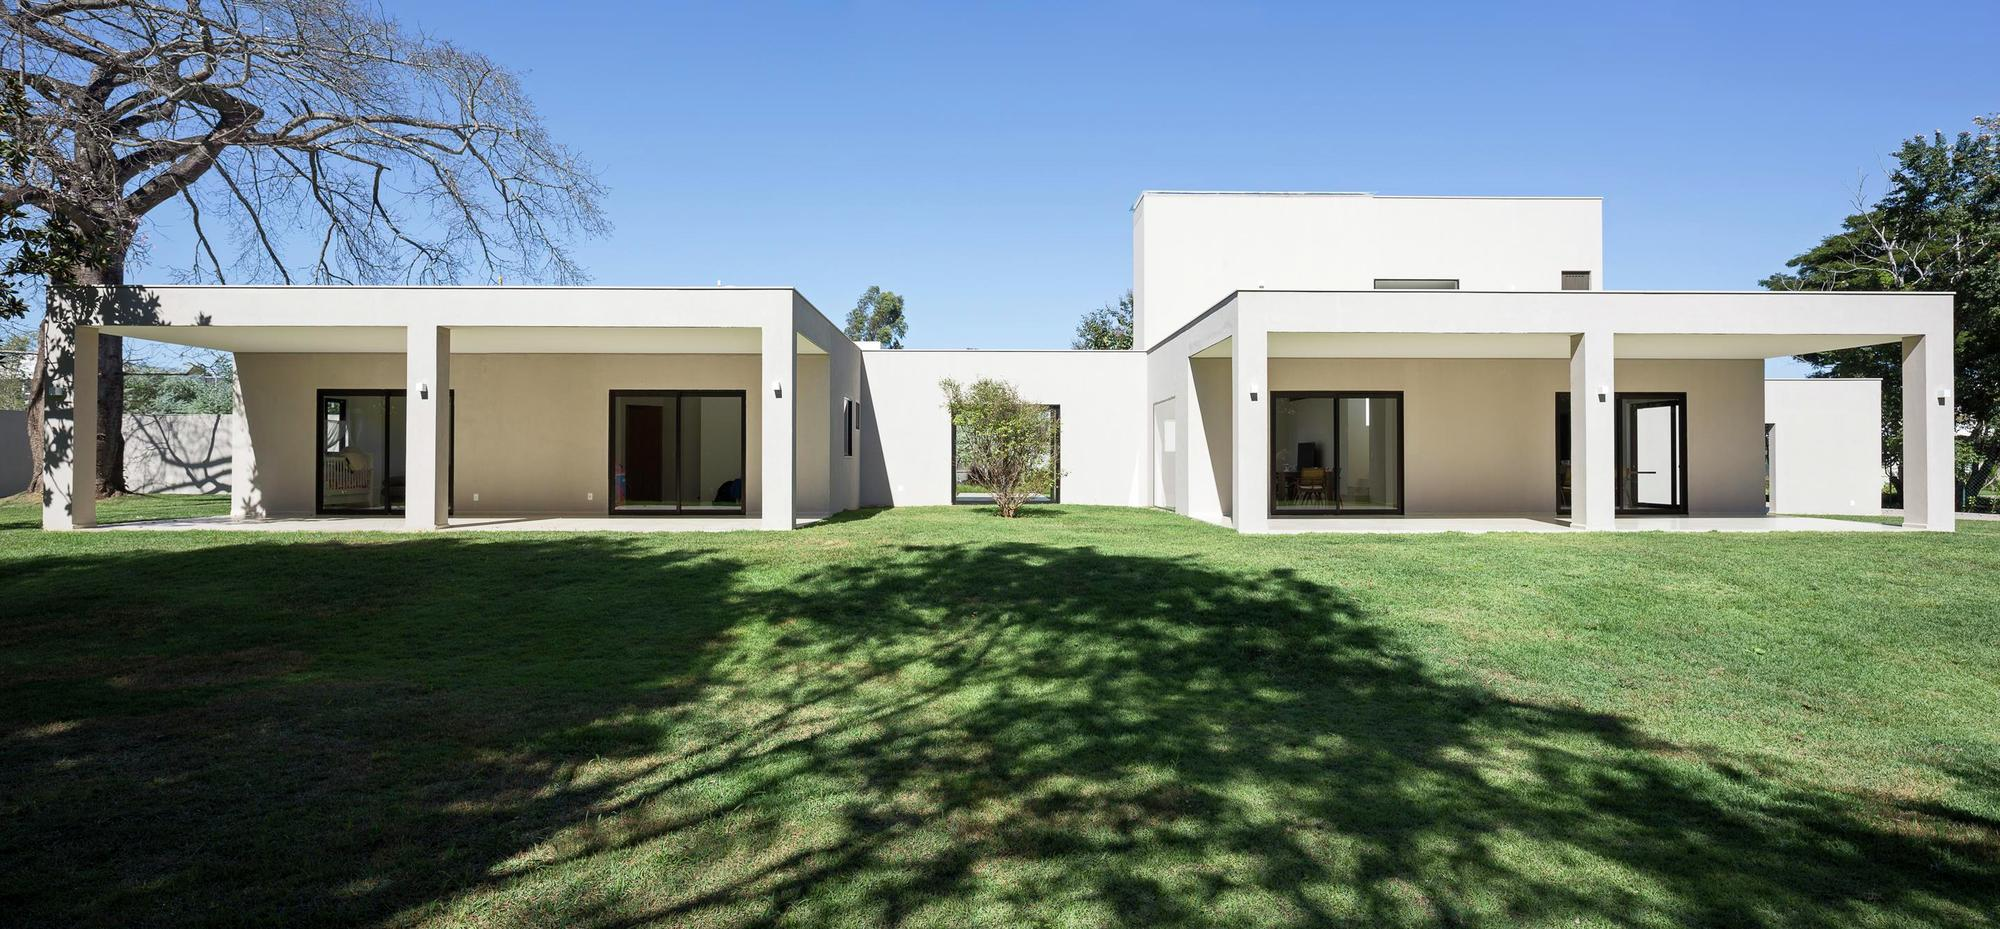 Casa paineira bloco arquitetos archdaily brasil - The cubic home ...